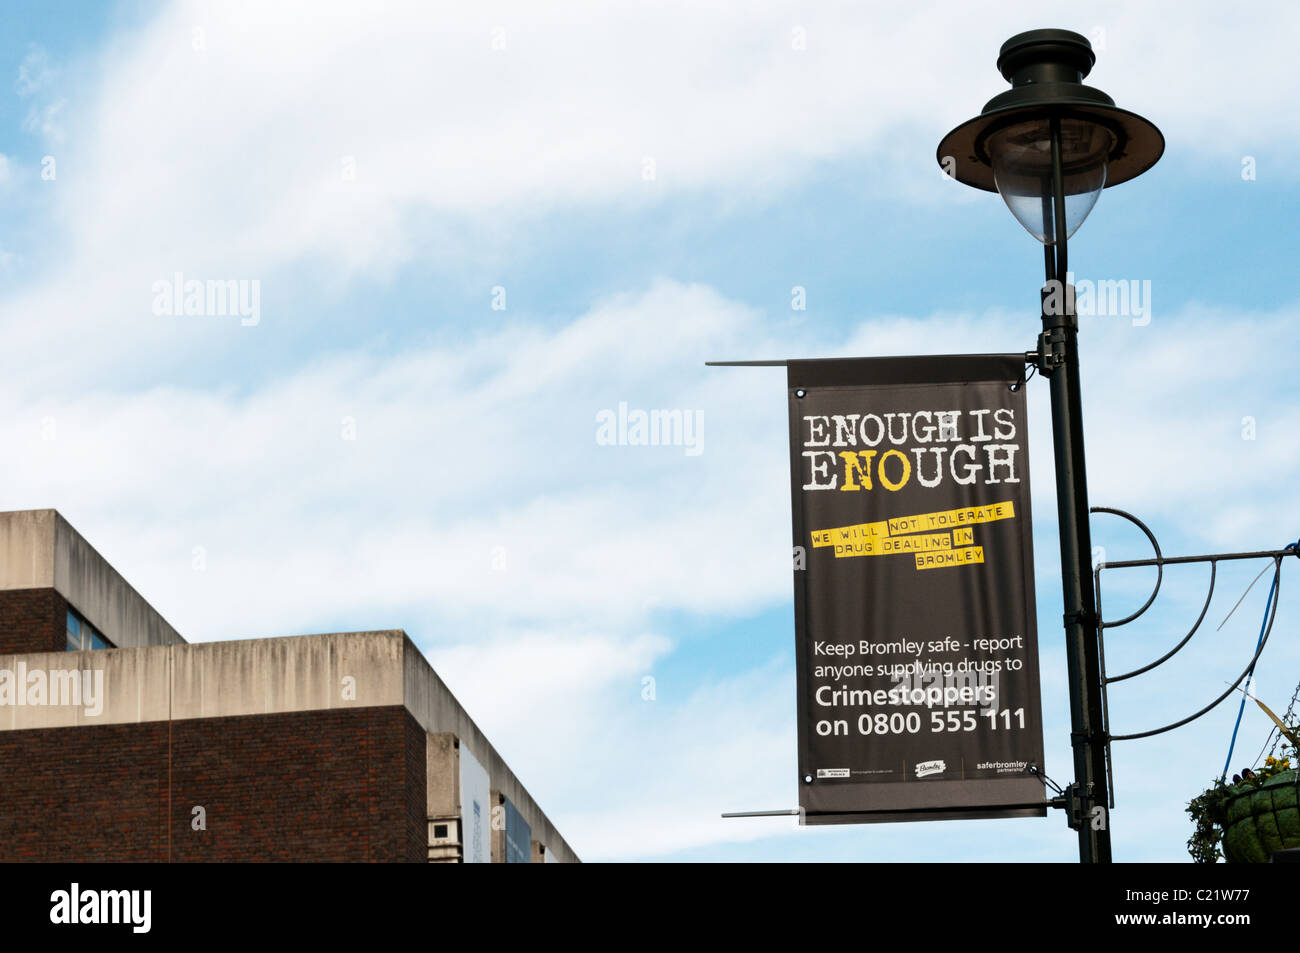 A sign displaying an anti drugs message in the town centre of Bromley, South London - Stock Image